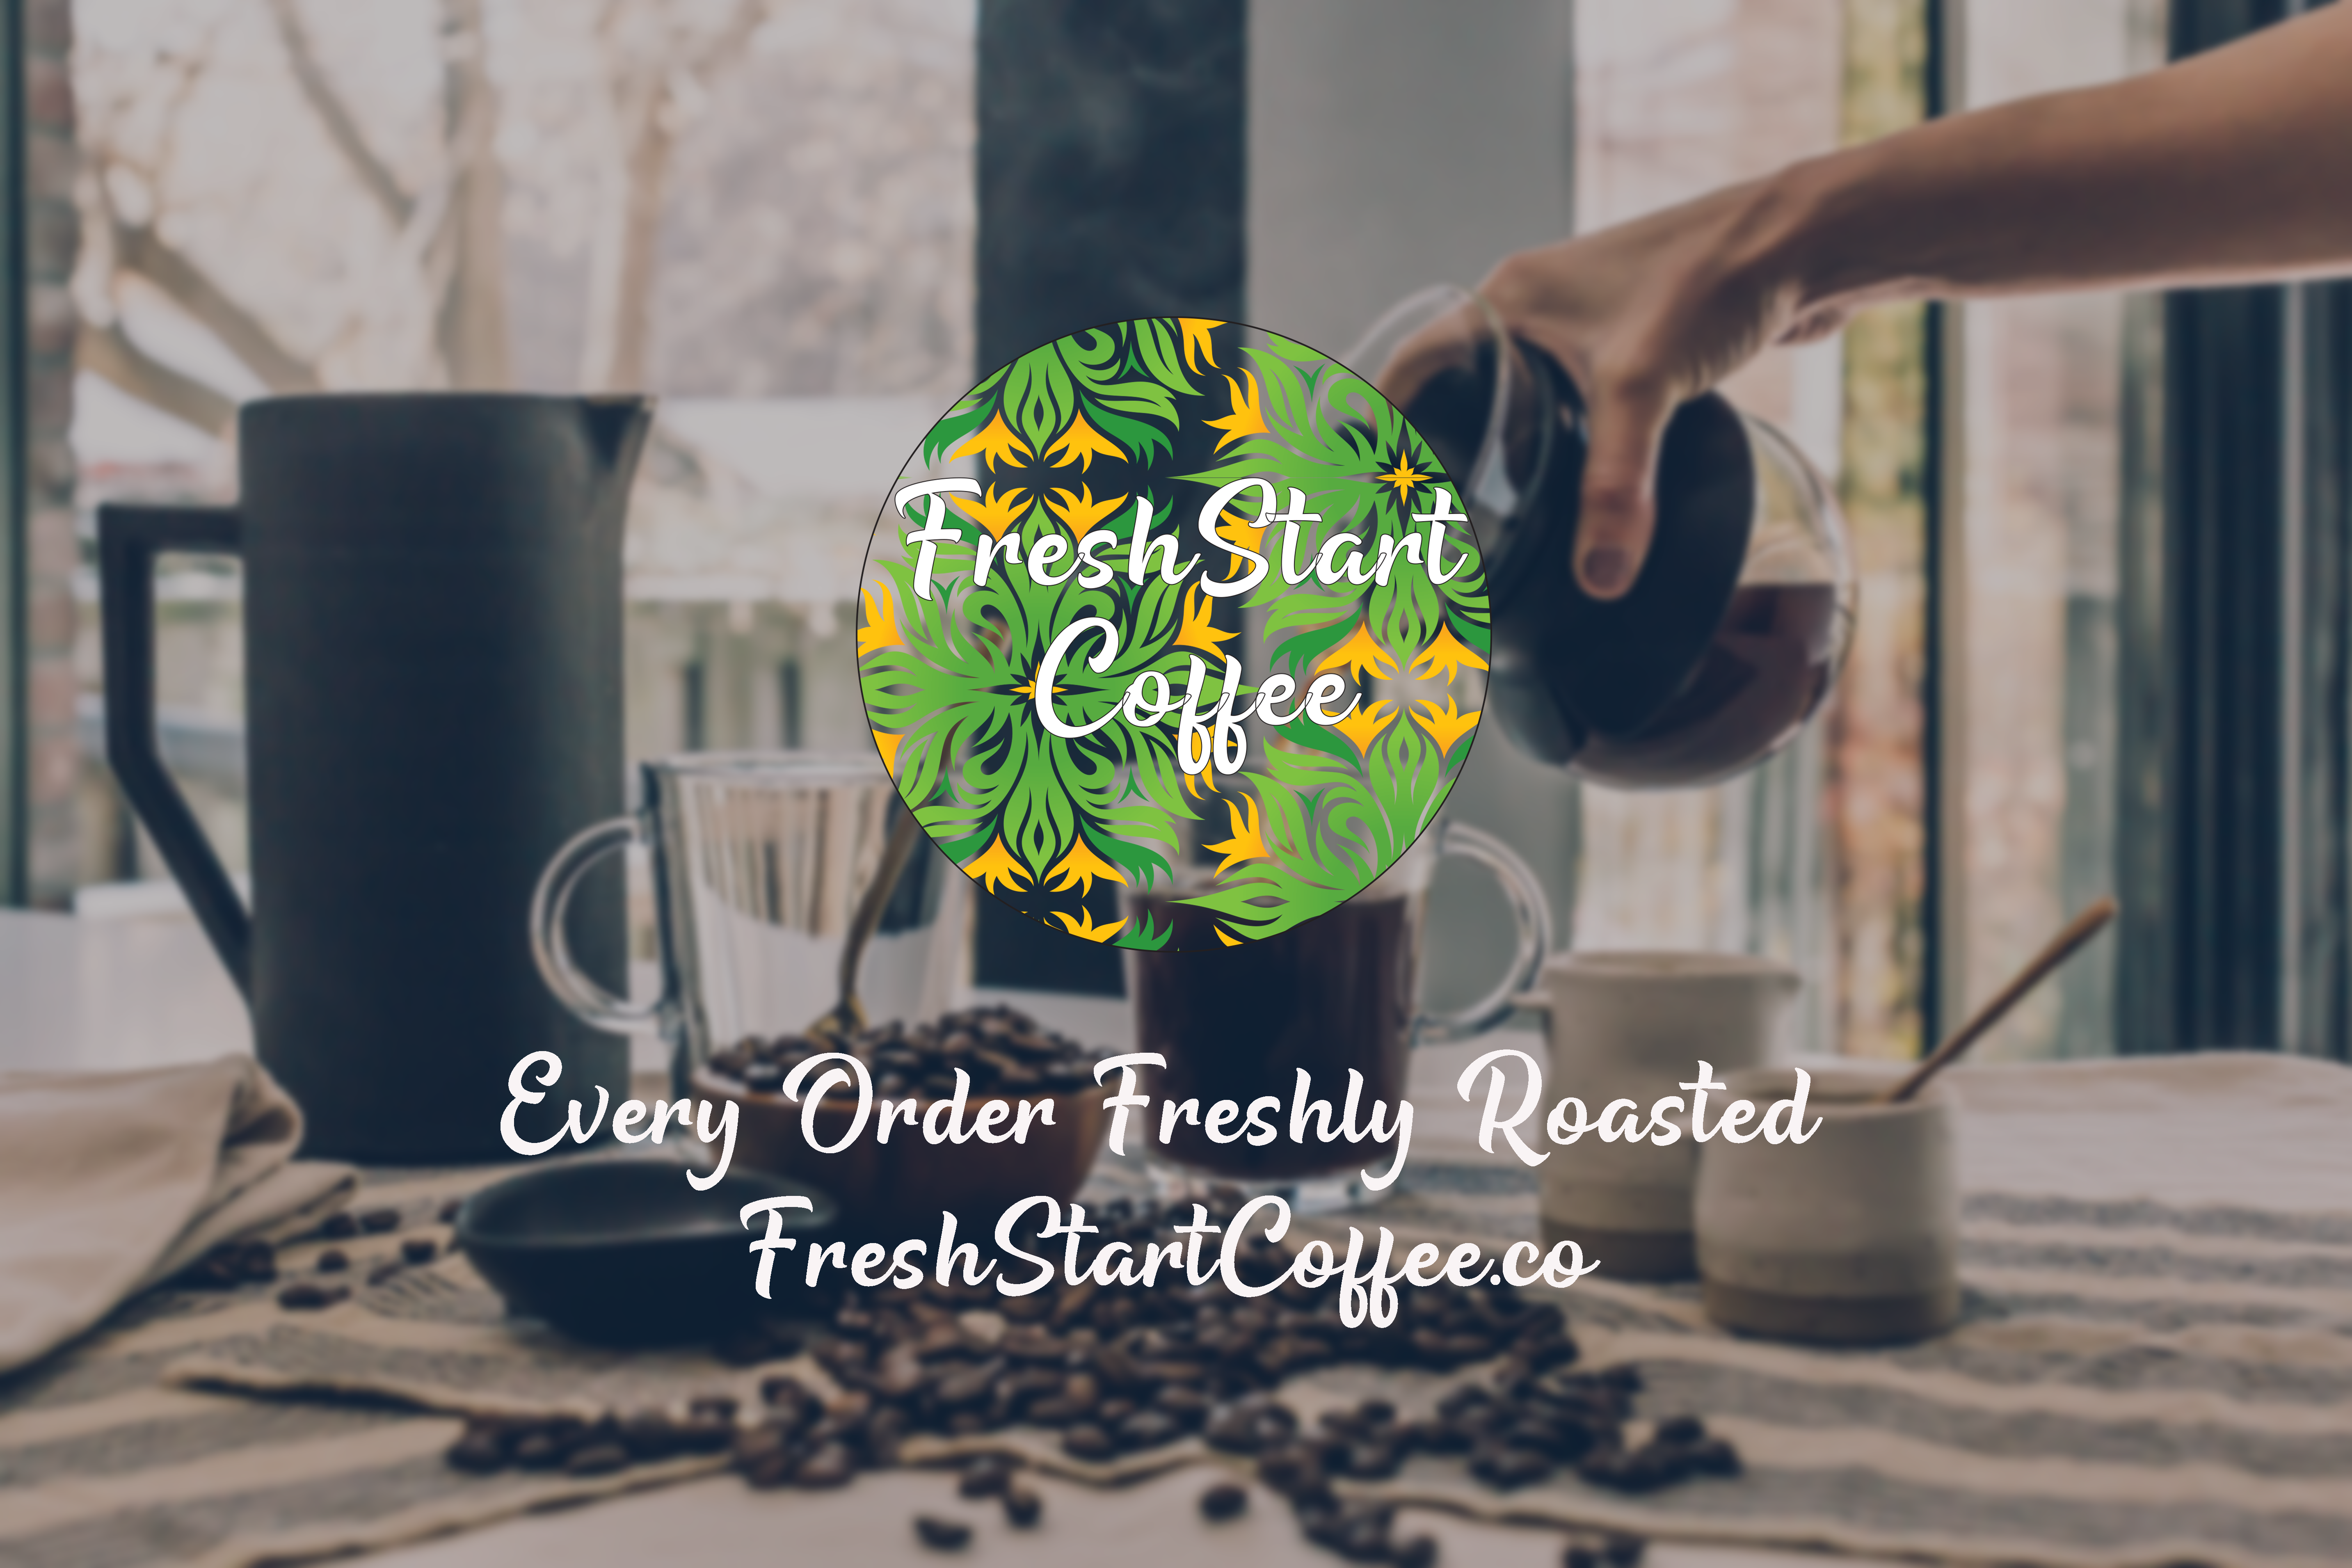 Freshstart Coffee Is Literally The Optimal Product To Help People Start Their Day Fresh